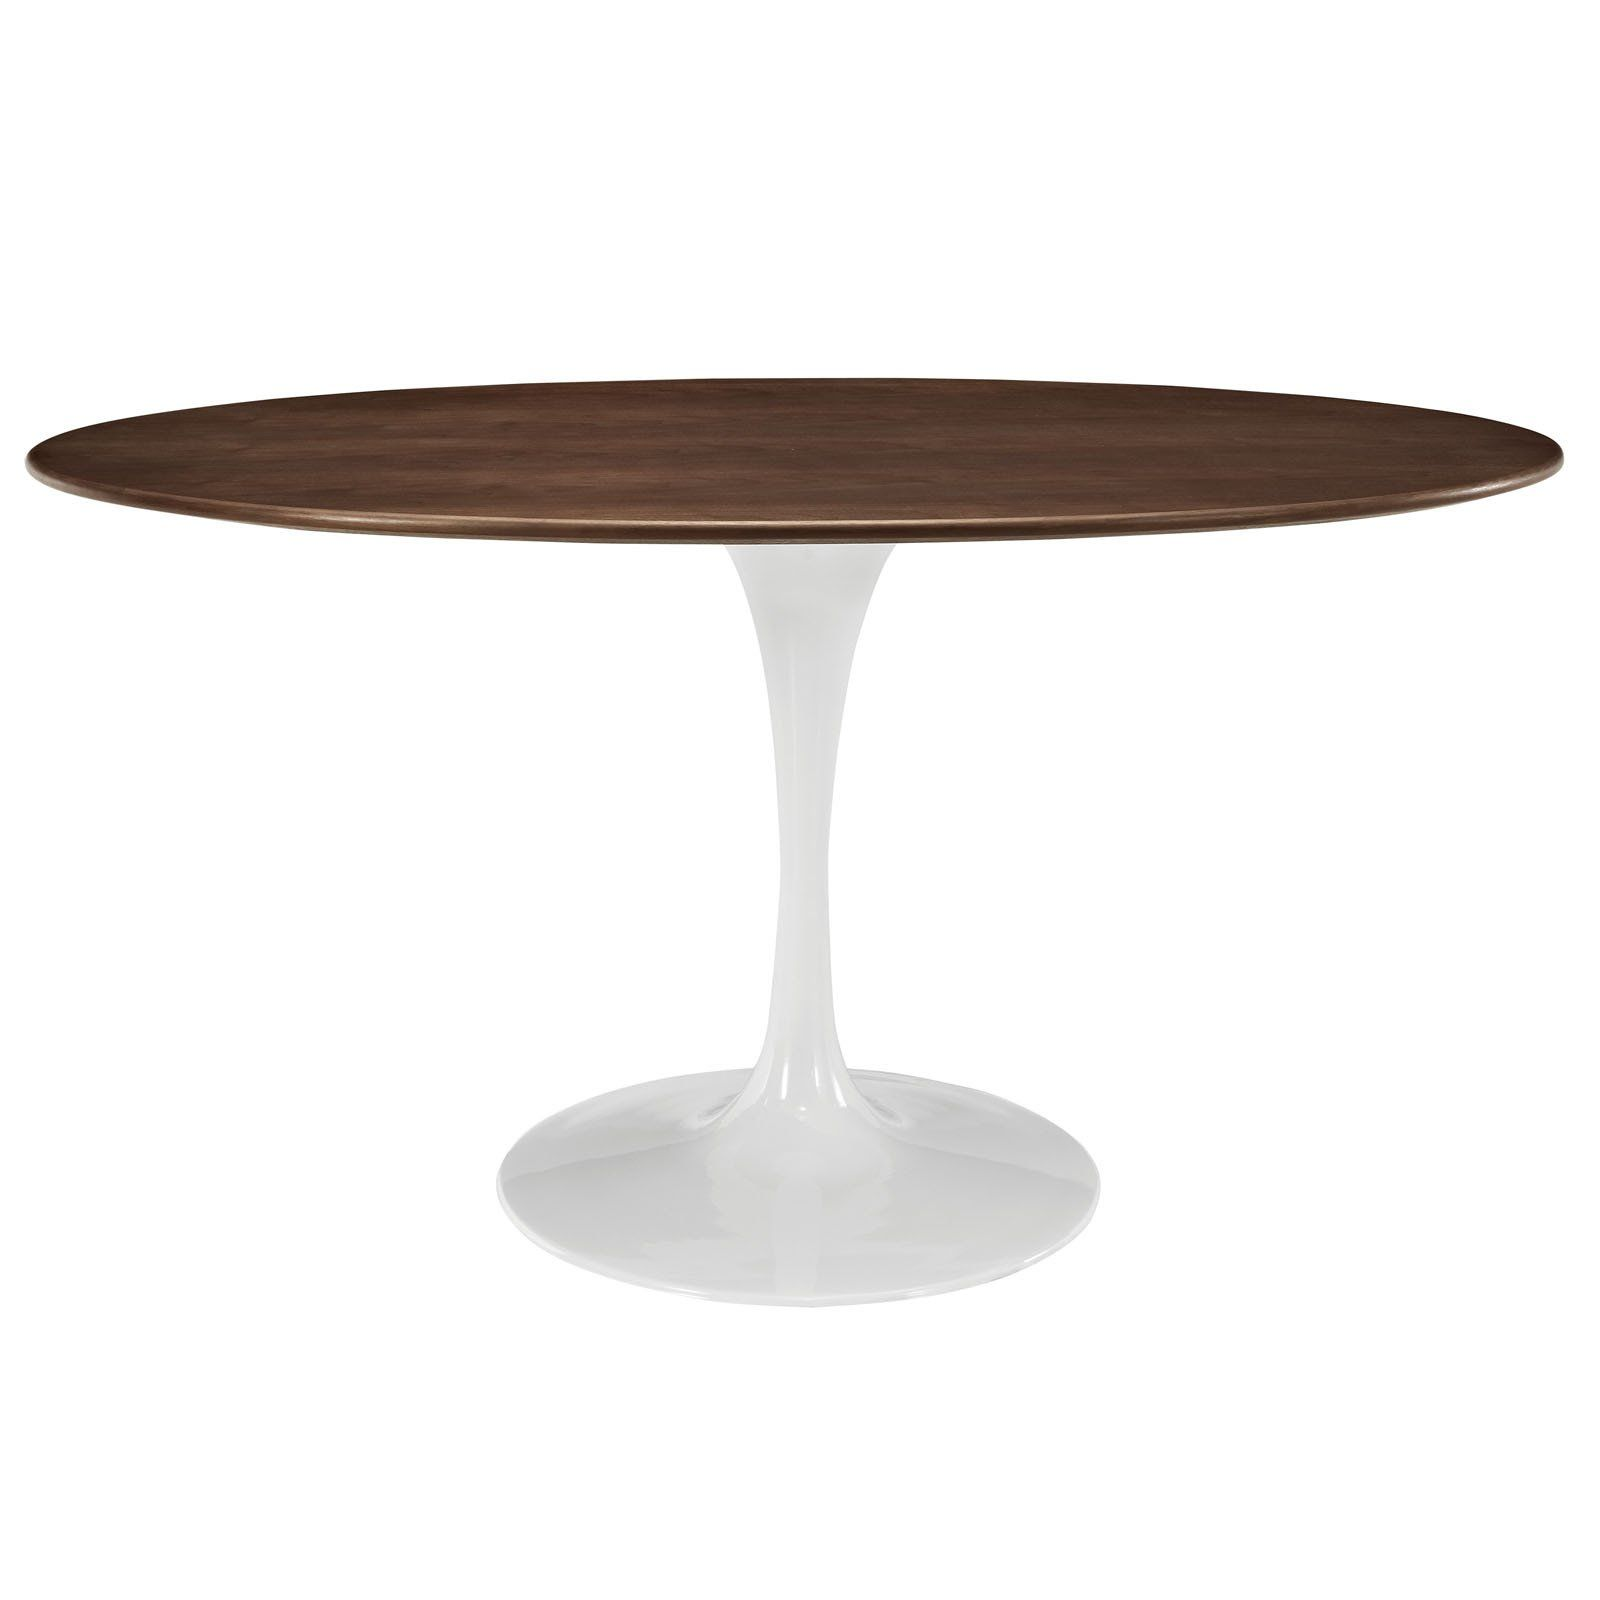 Tulip Style 60 Oval Wood Dining Table Dining Table Walnut Dining Table Modern Dining Table